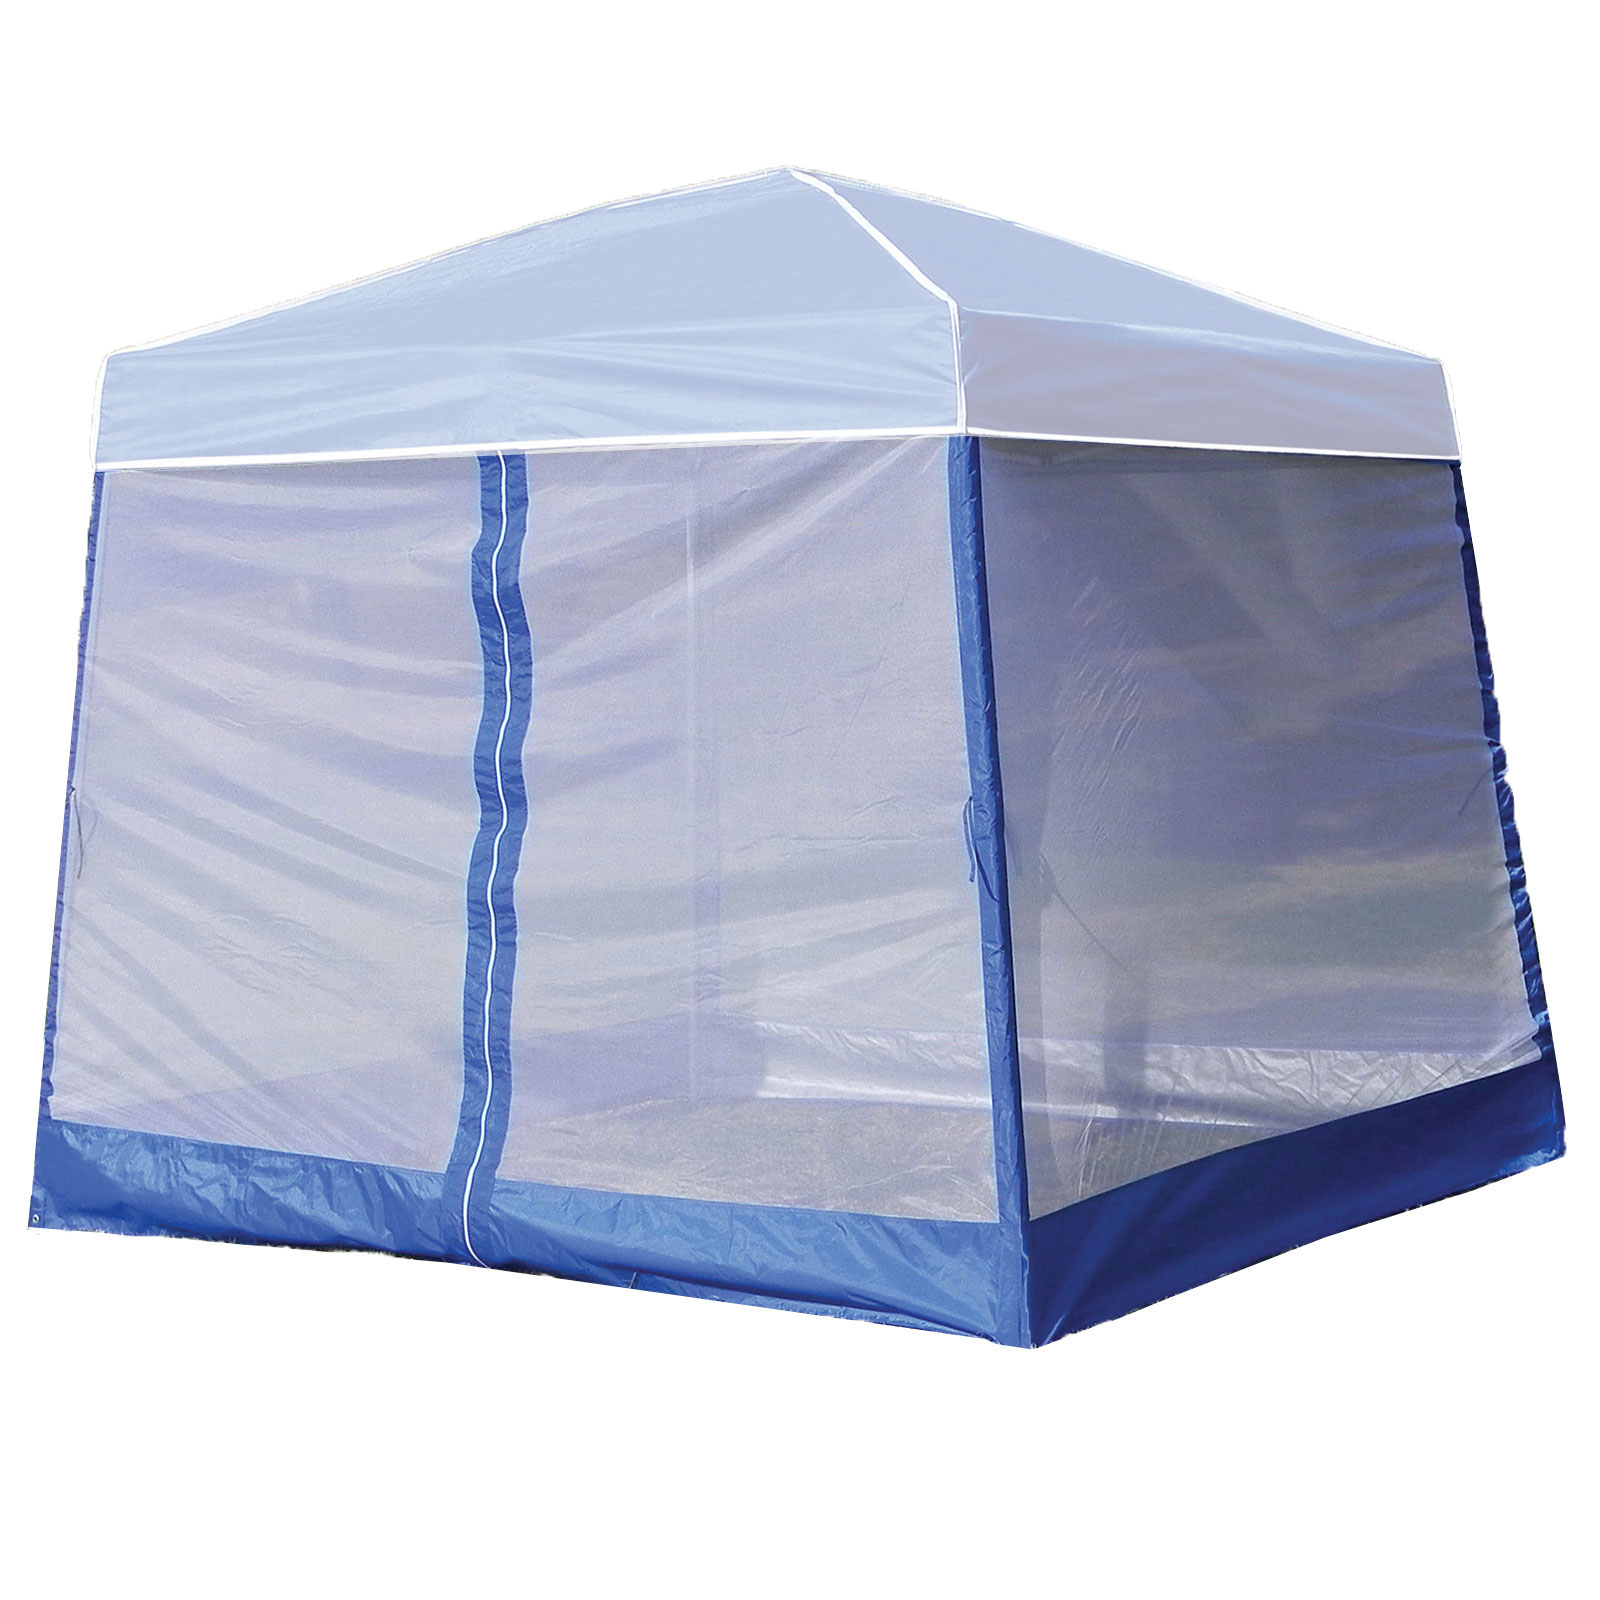 Z-Shade 10 Foot Angled Leg Screenroom Tent Camping Outdoor Patio Shelter, Blue by Z-Shade